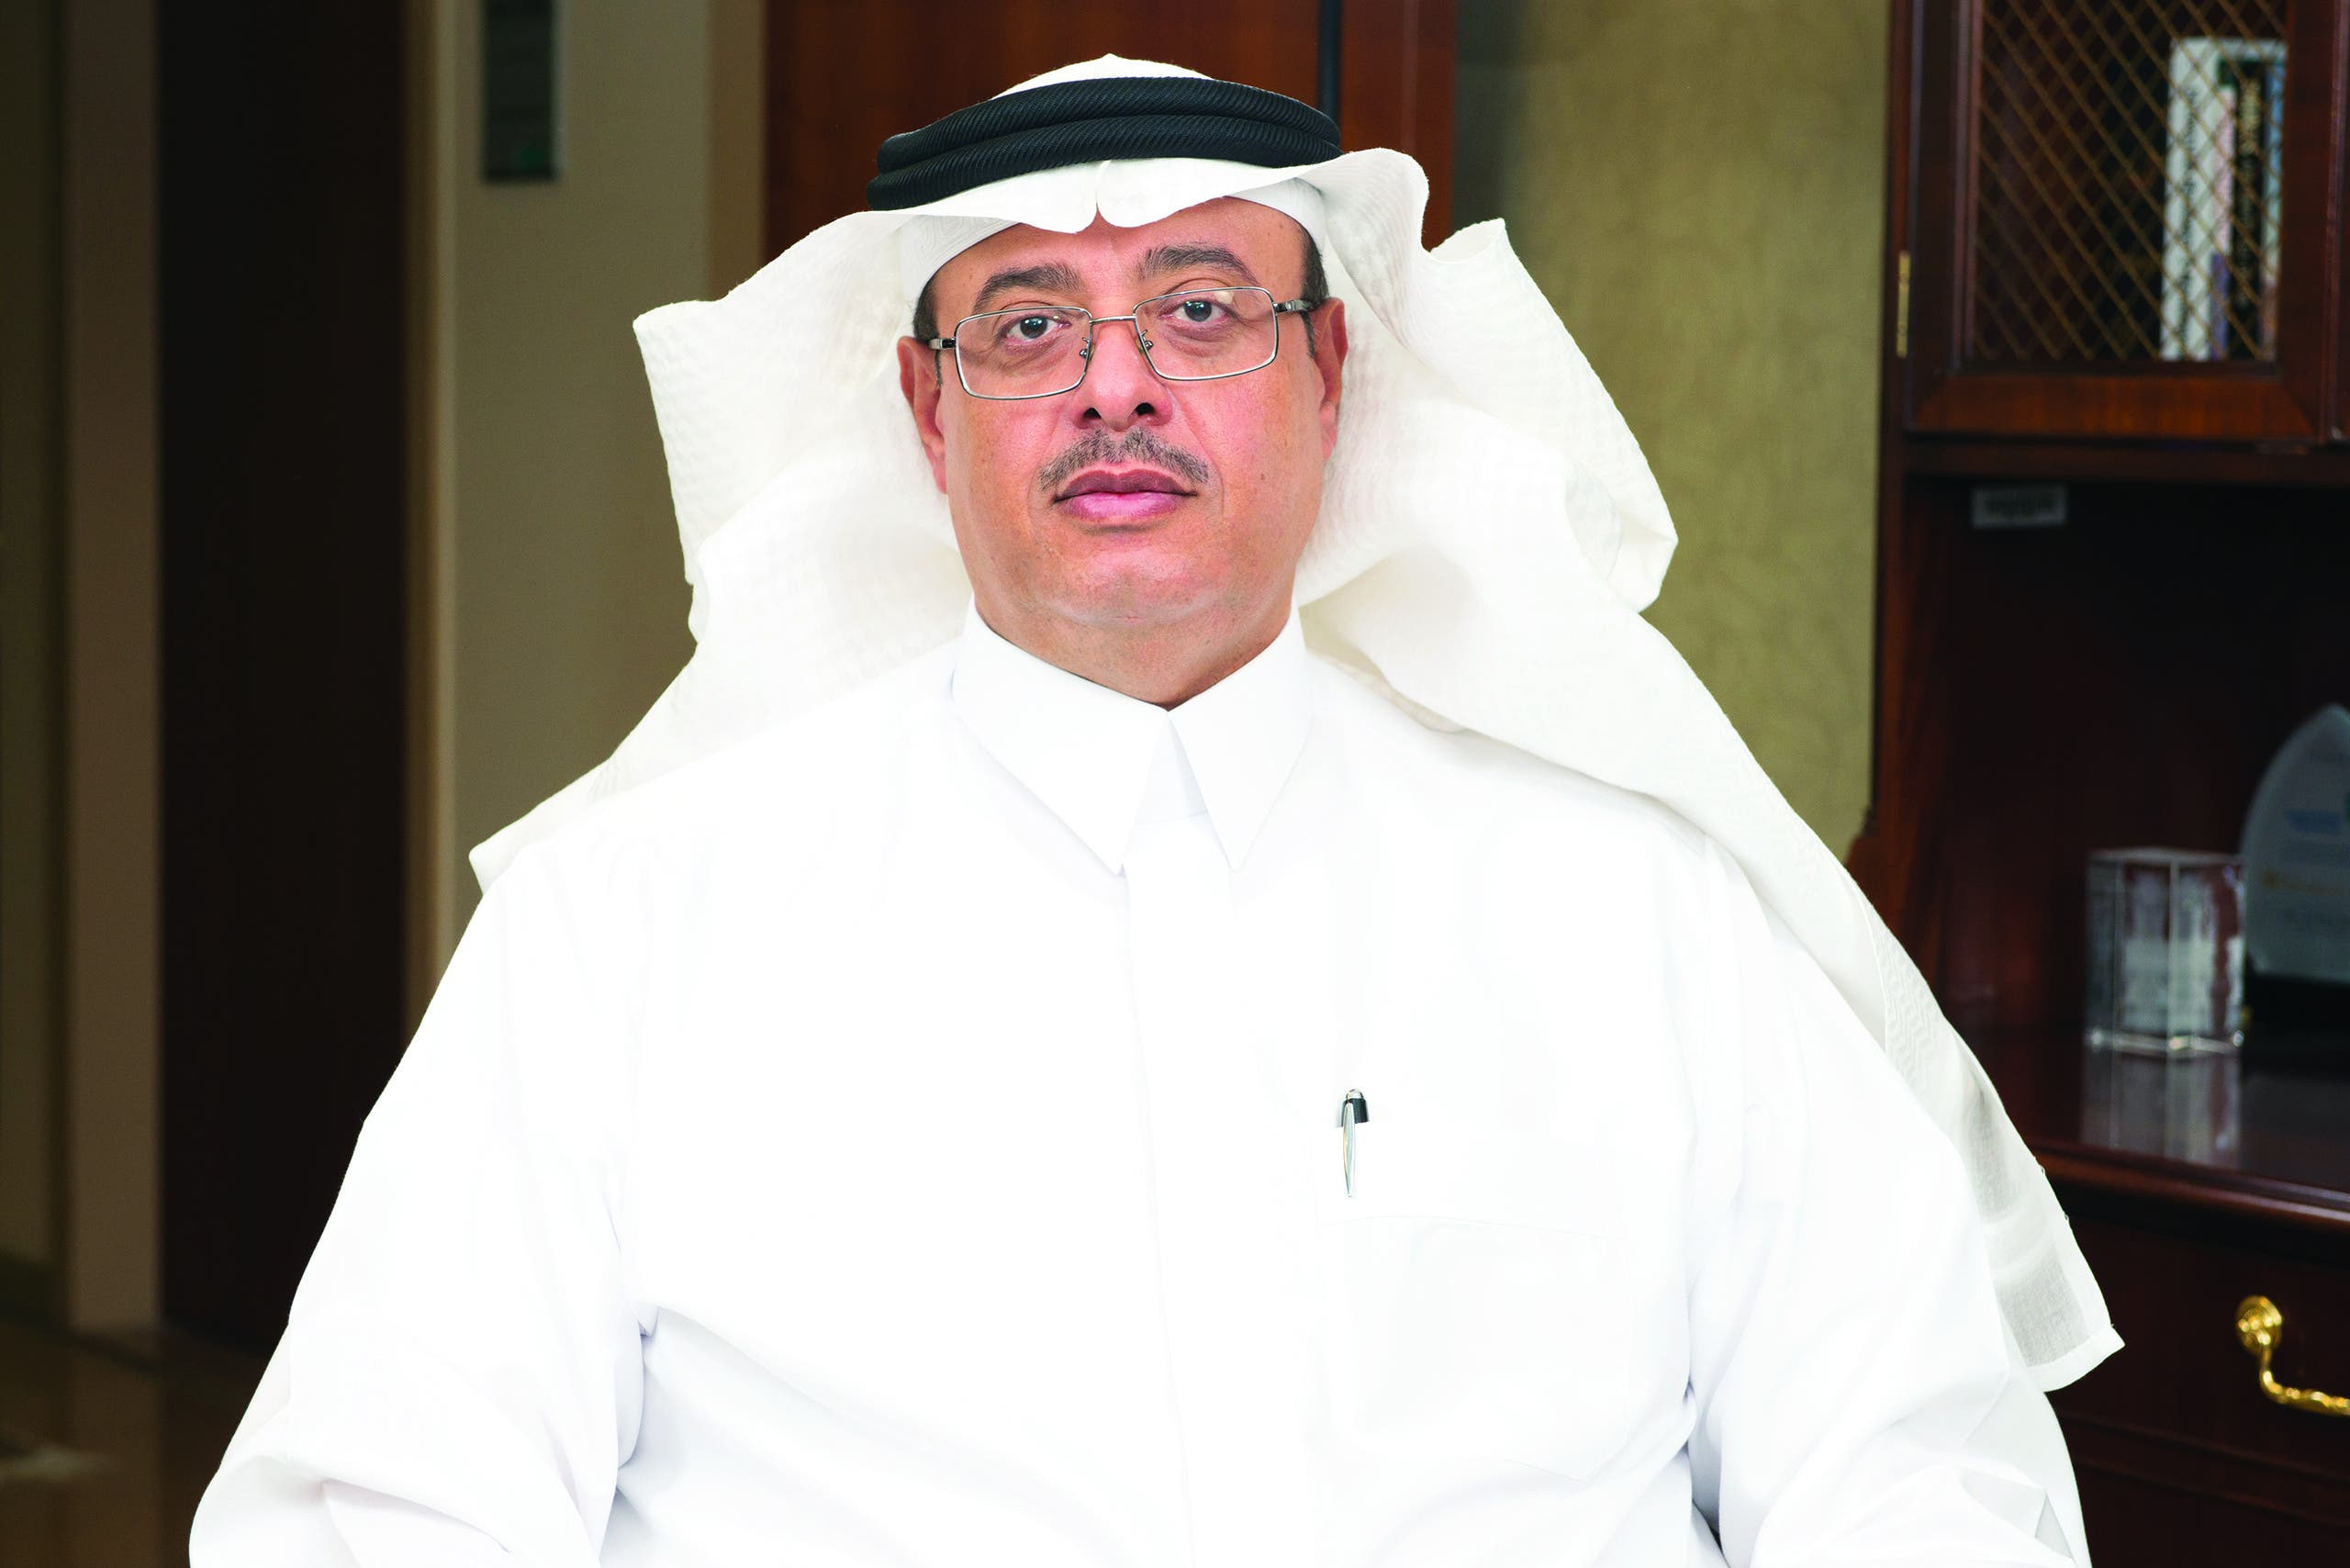 Saudi Aramco's Senior Vice President of Human Resources and Corporate Service Nabeel Jama. (Supplied)